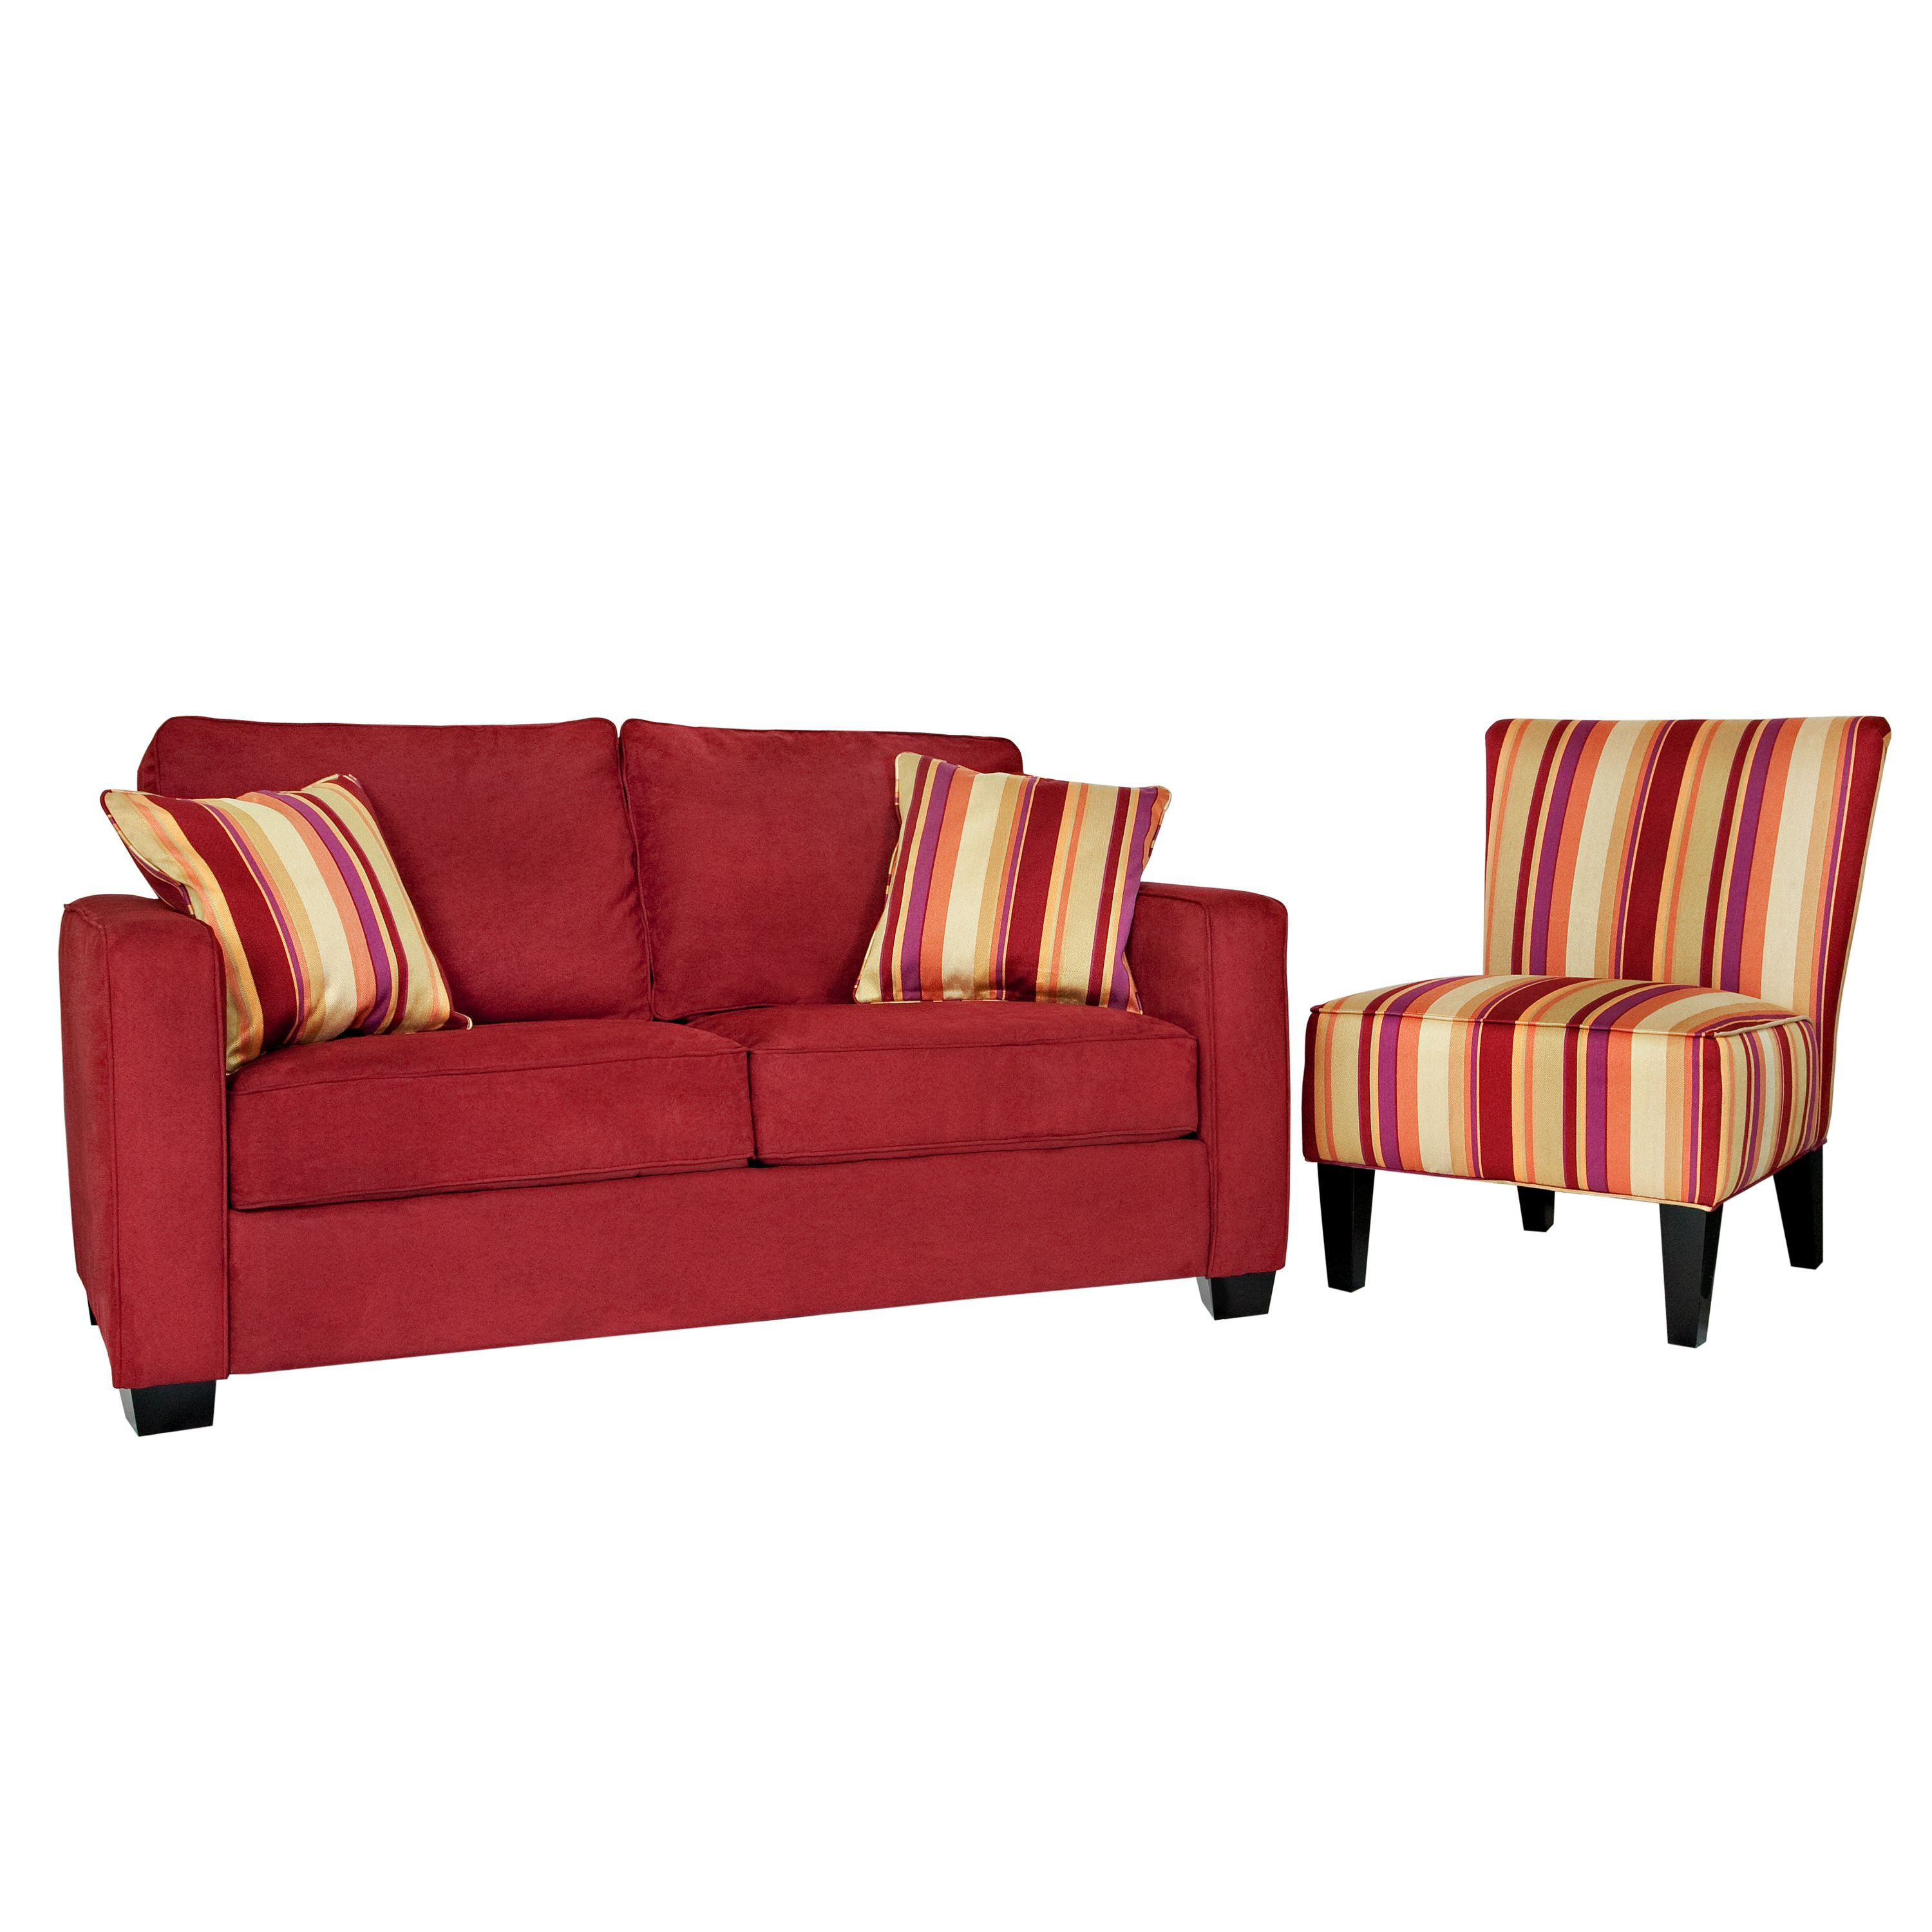 Portfolio Madi Crimson Red Microfiber Sofa With Wine Striped